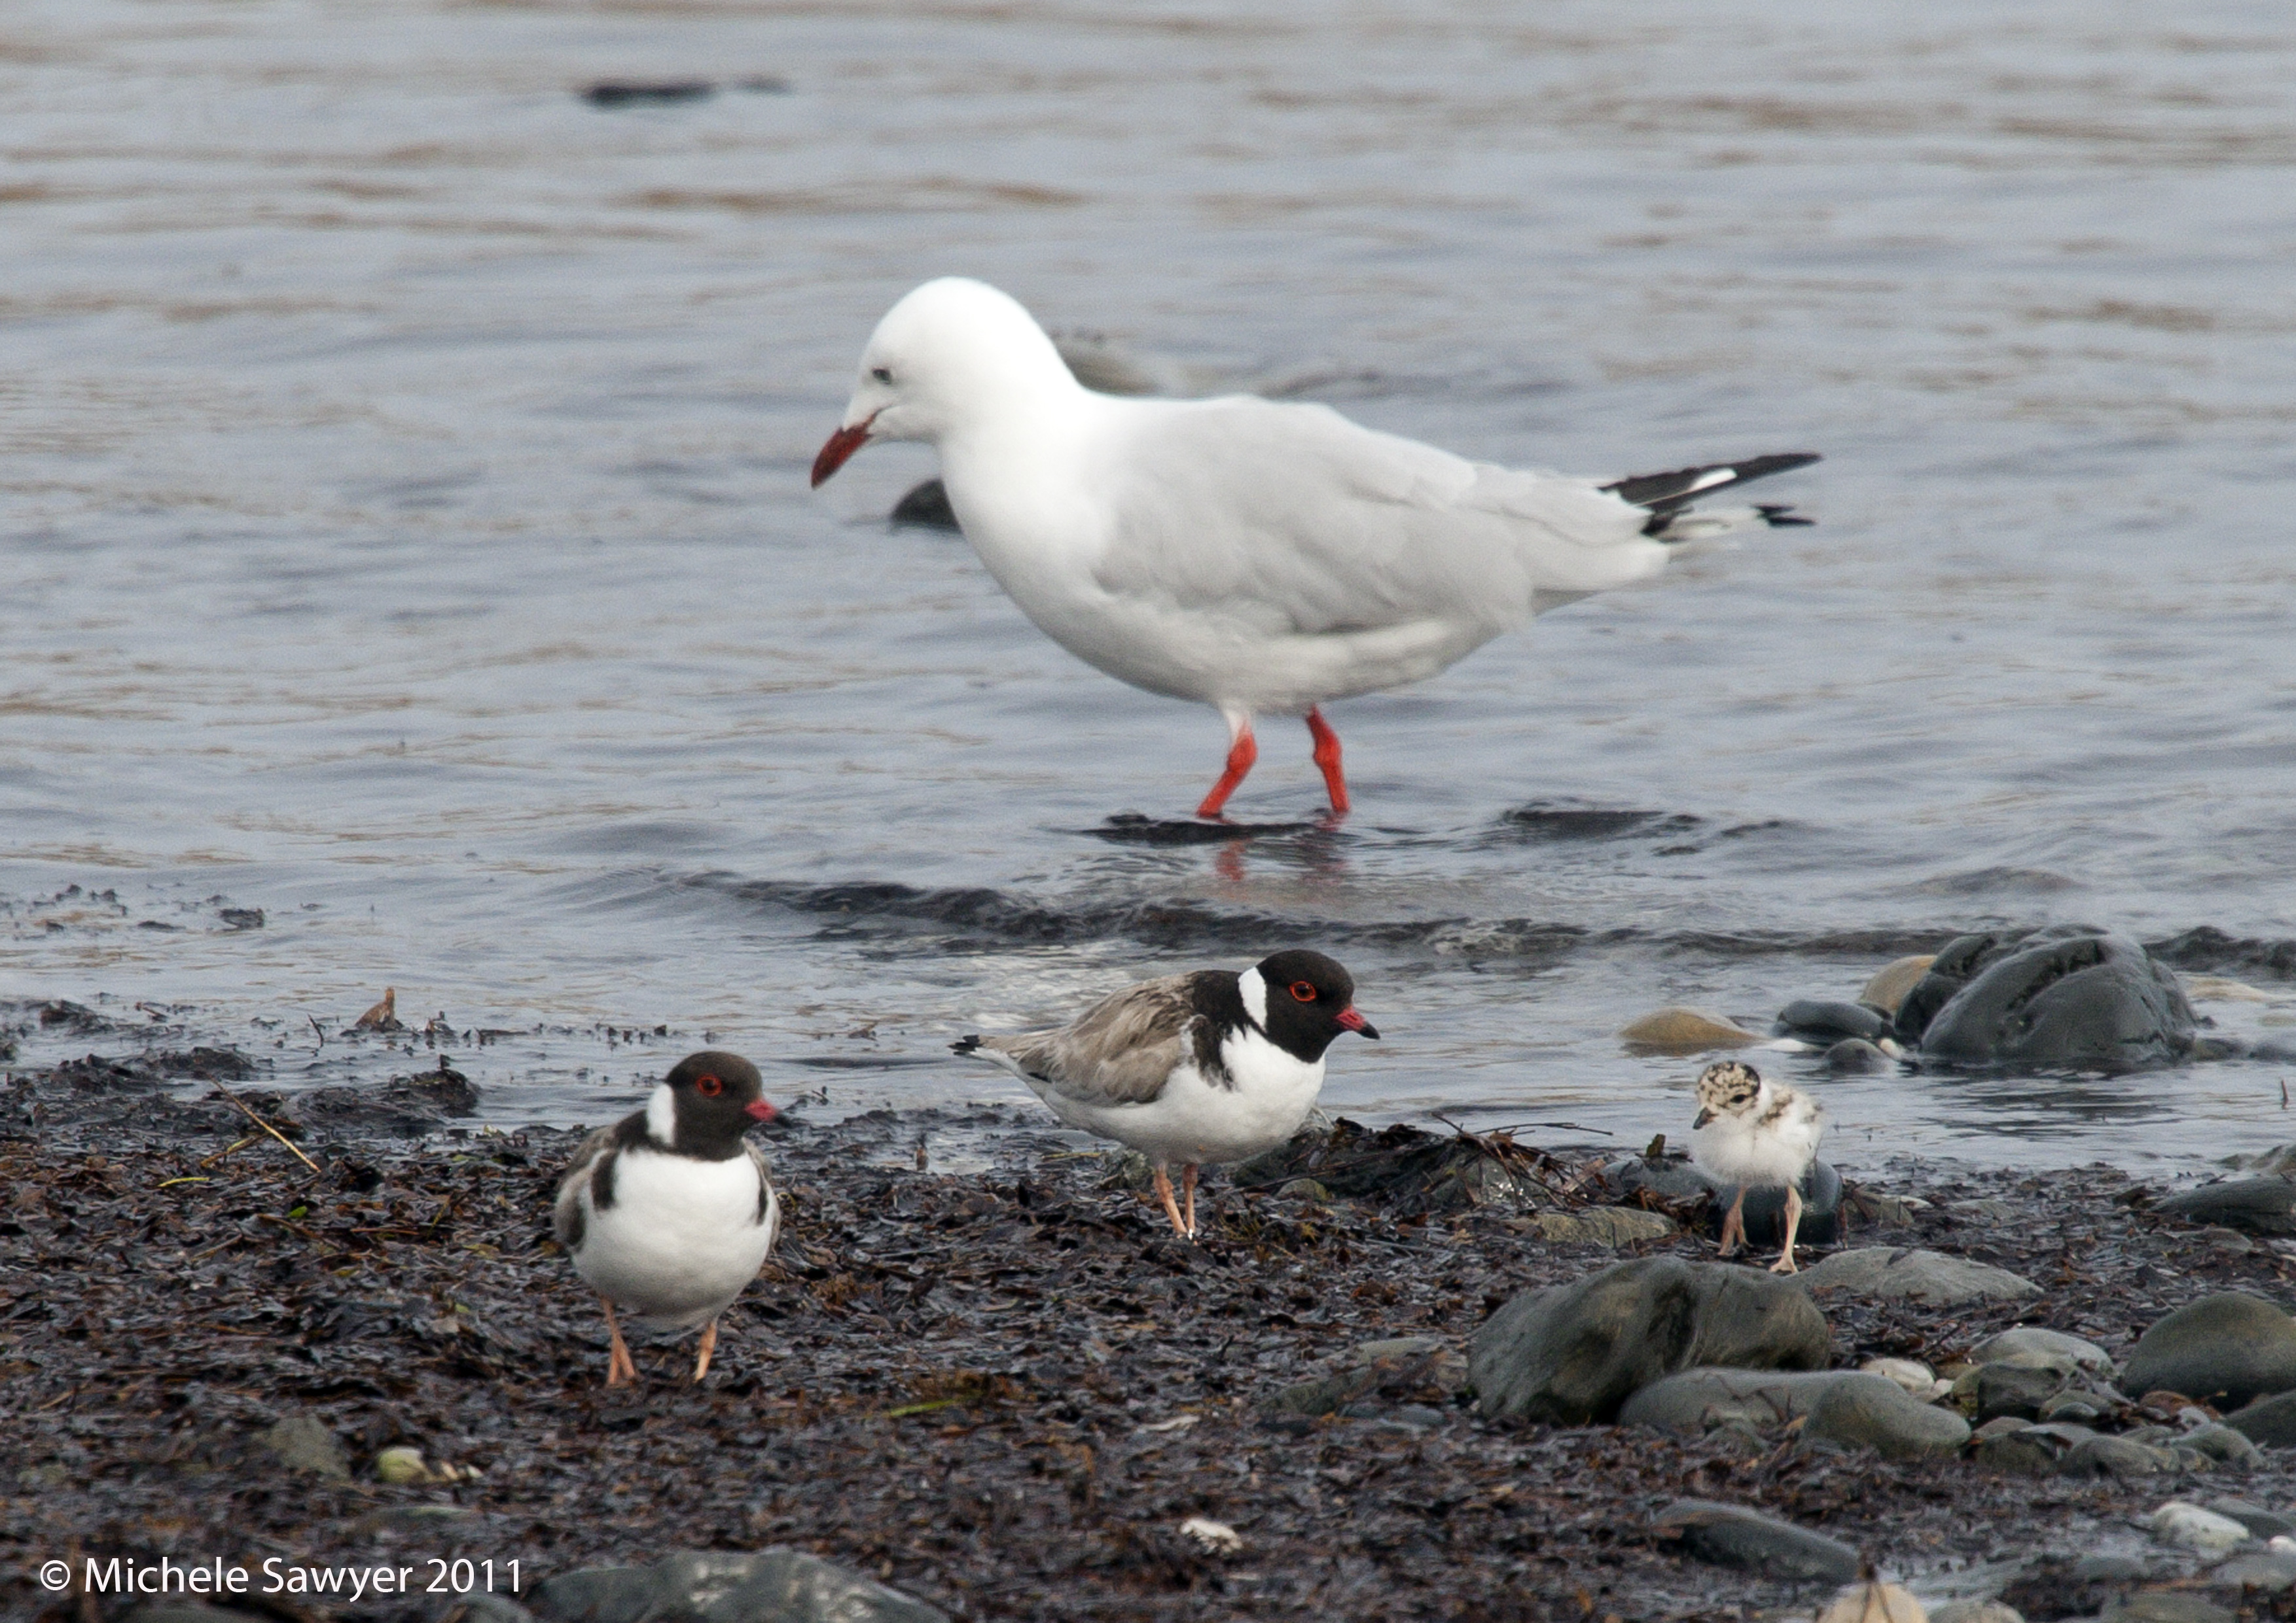 Hooded plover family next to a seagull. Photo: Michelle Sawyer